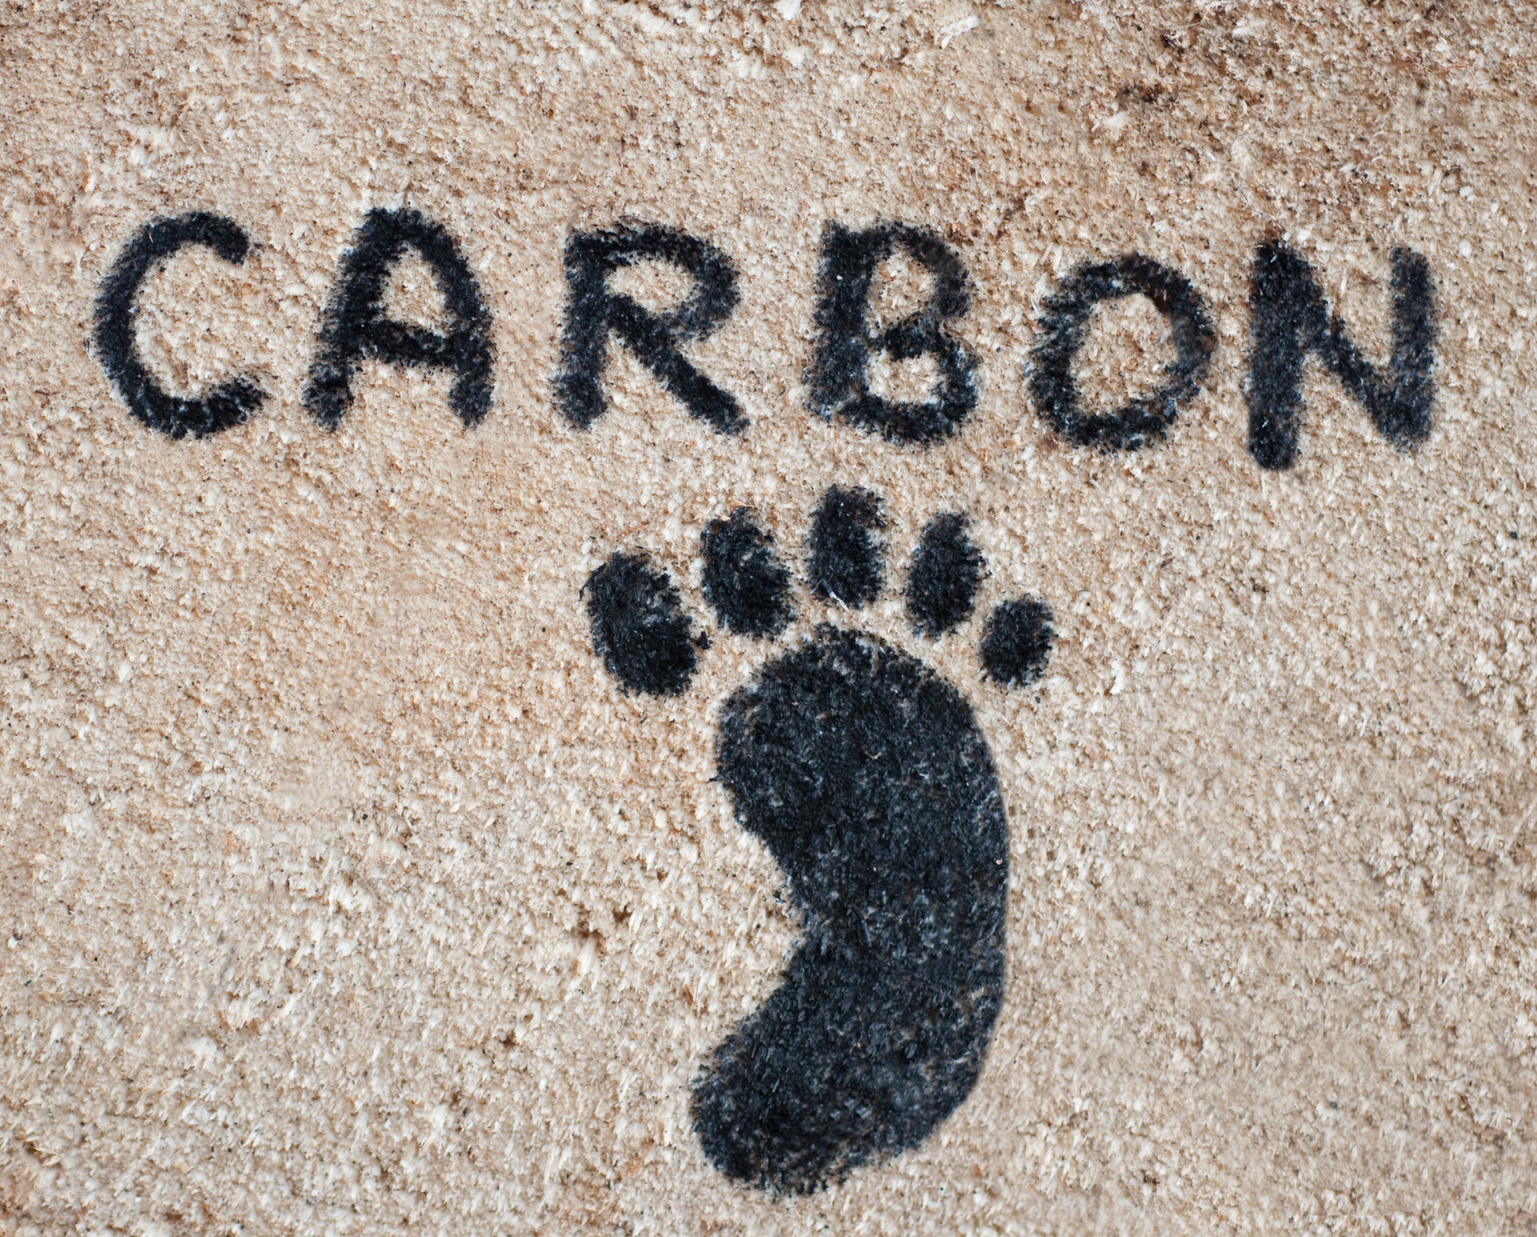 carbon footprint facts